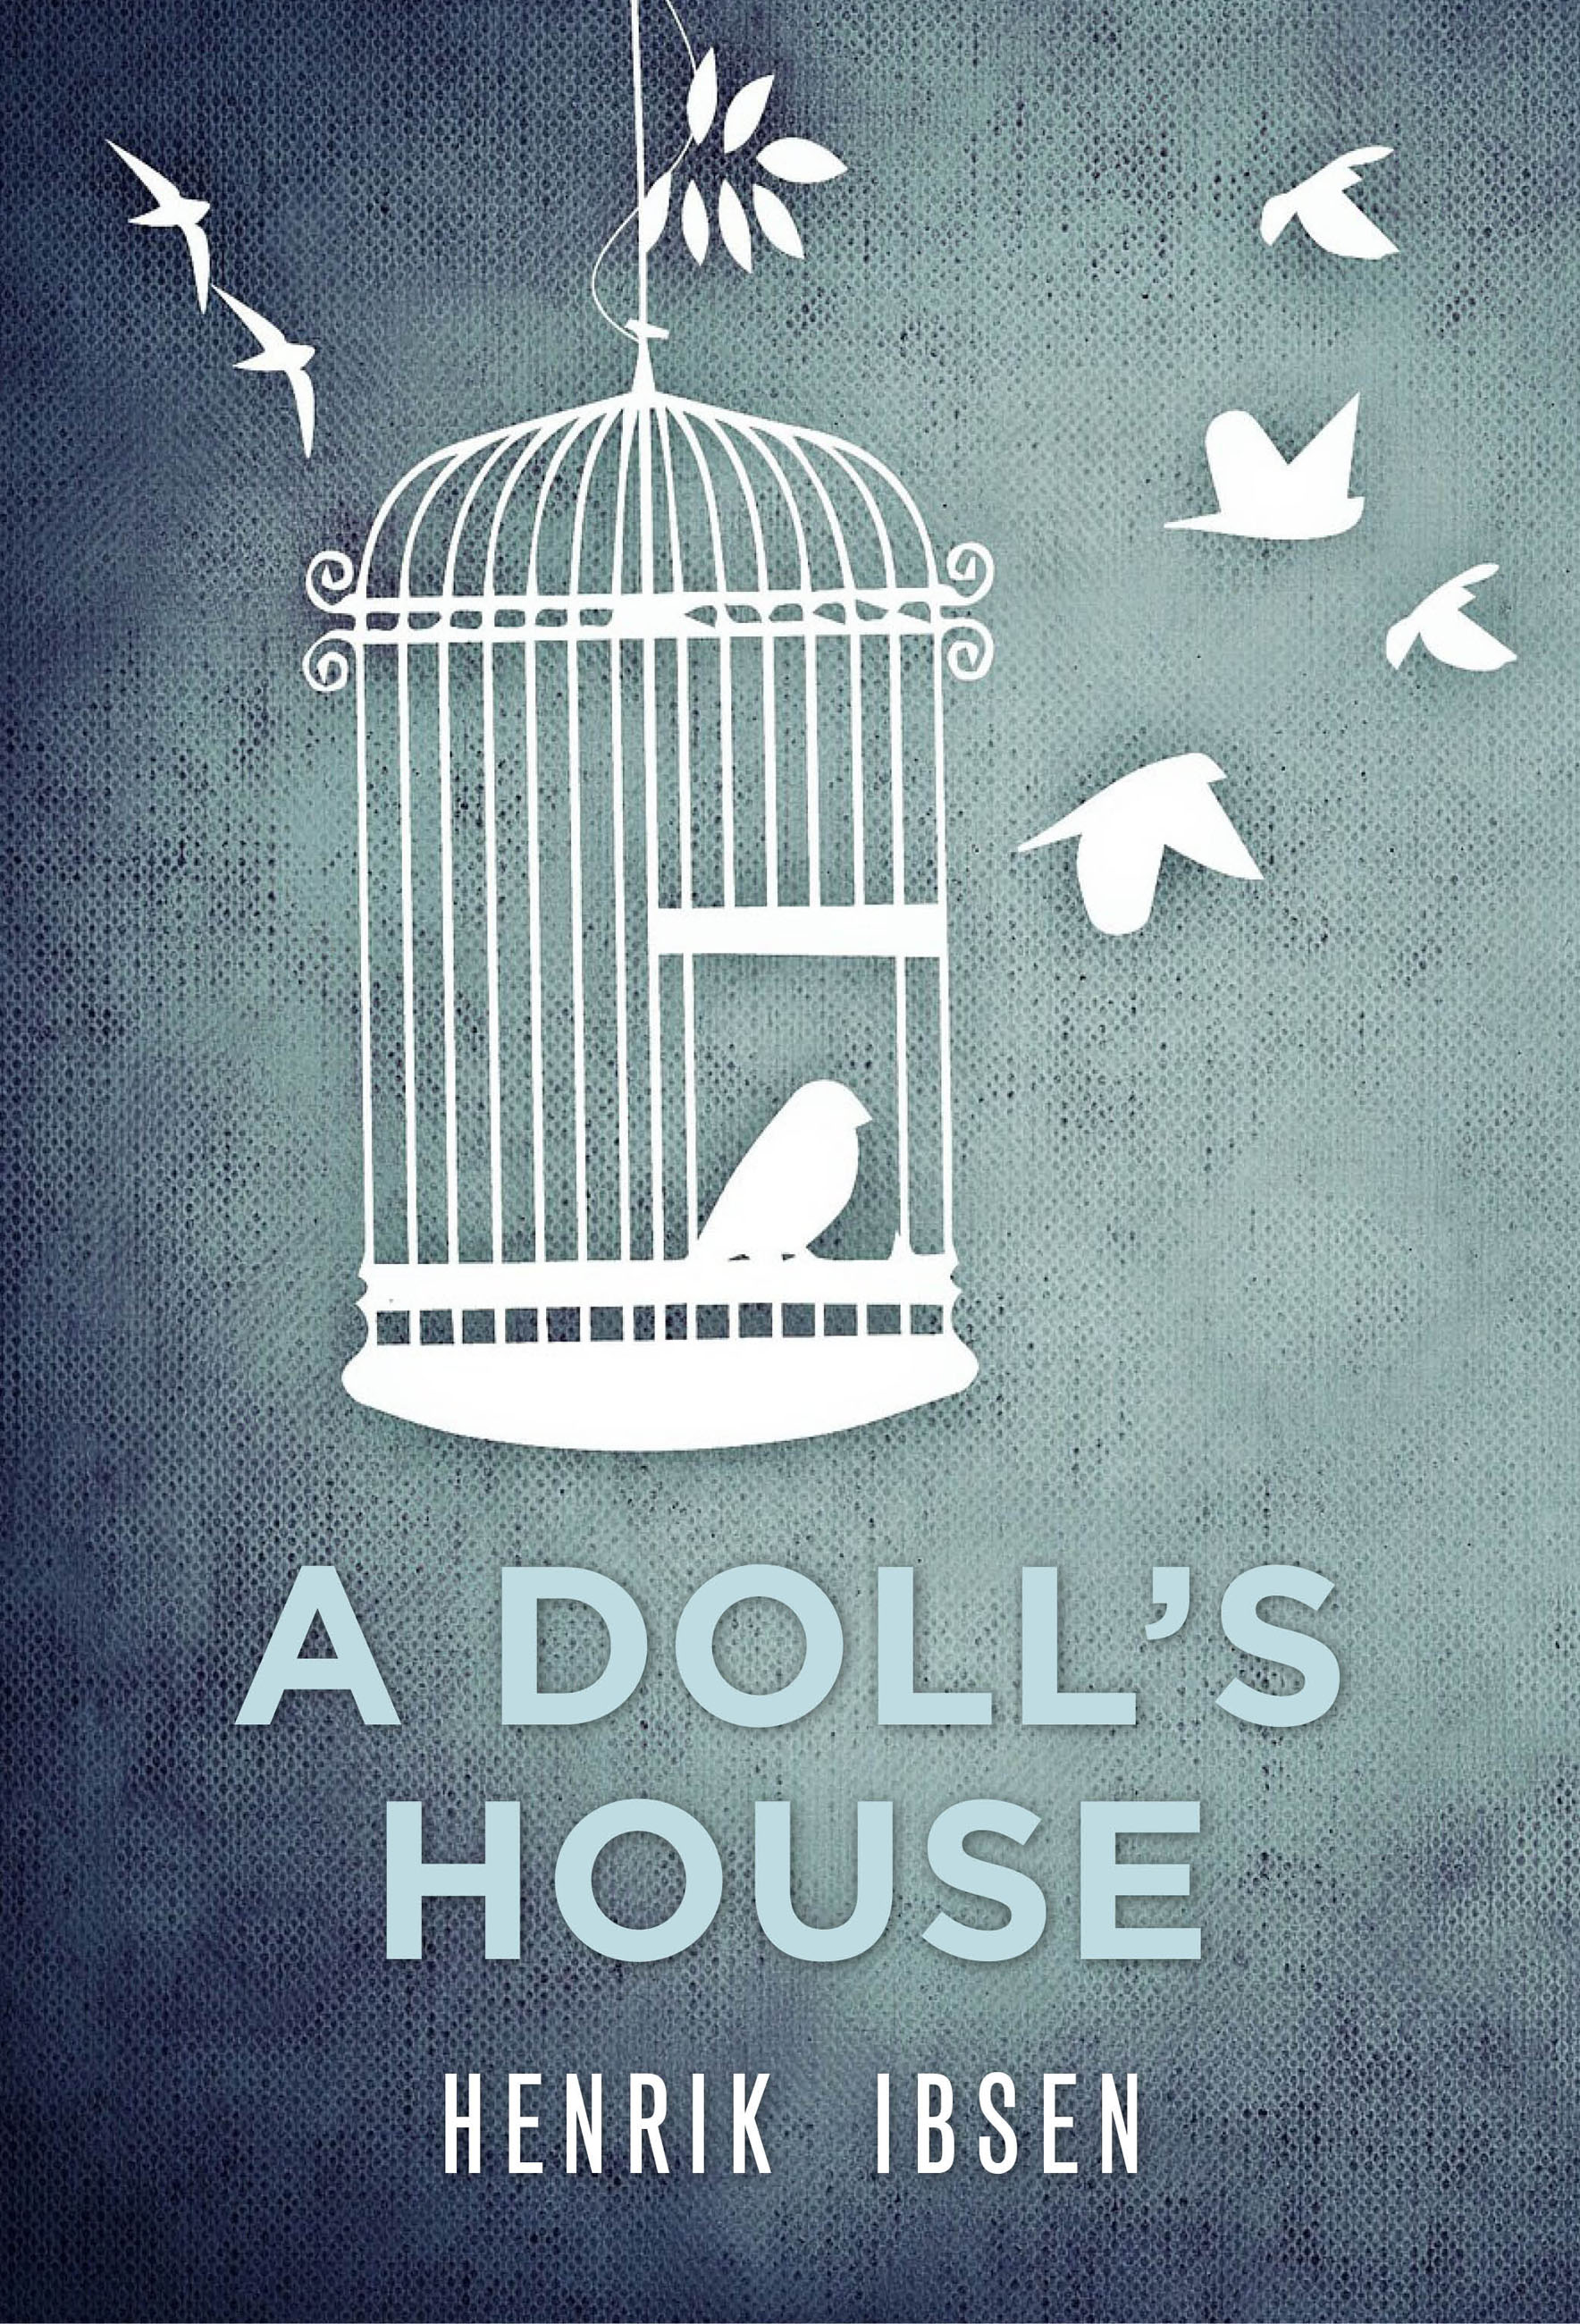 in a dolls house summary At the beginning of the play, all seems hunky-dory nora and torvald helmer appear pretty happy together torvald speaks to his wife in a pretty dang demeaning way, but she doesn't really seem to mind the helmers are both quite excited because torvald has gotten a new job as the manager of a bank.